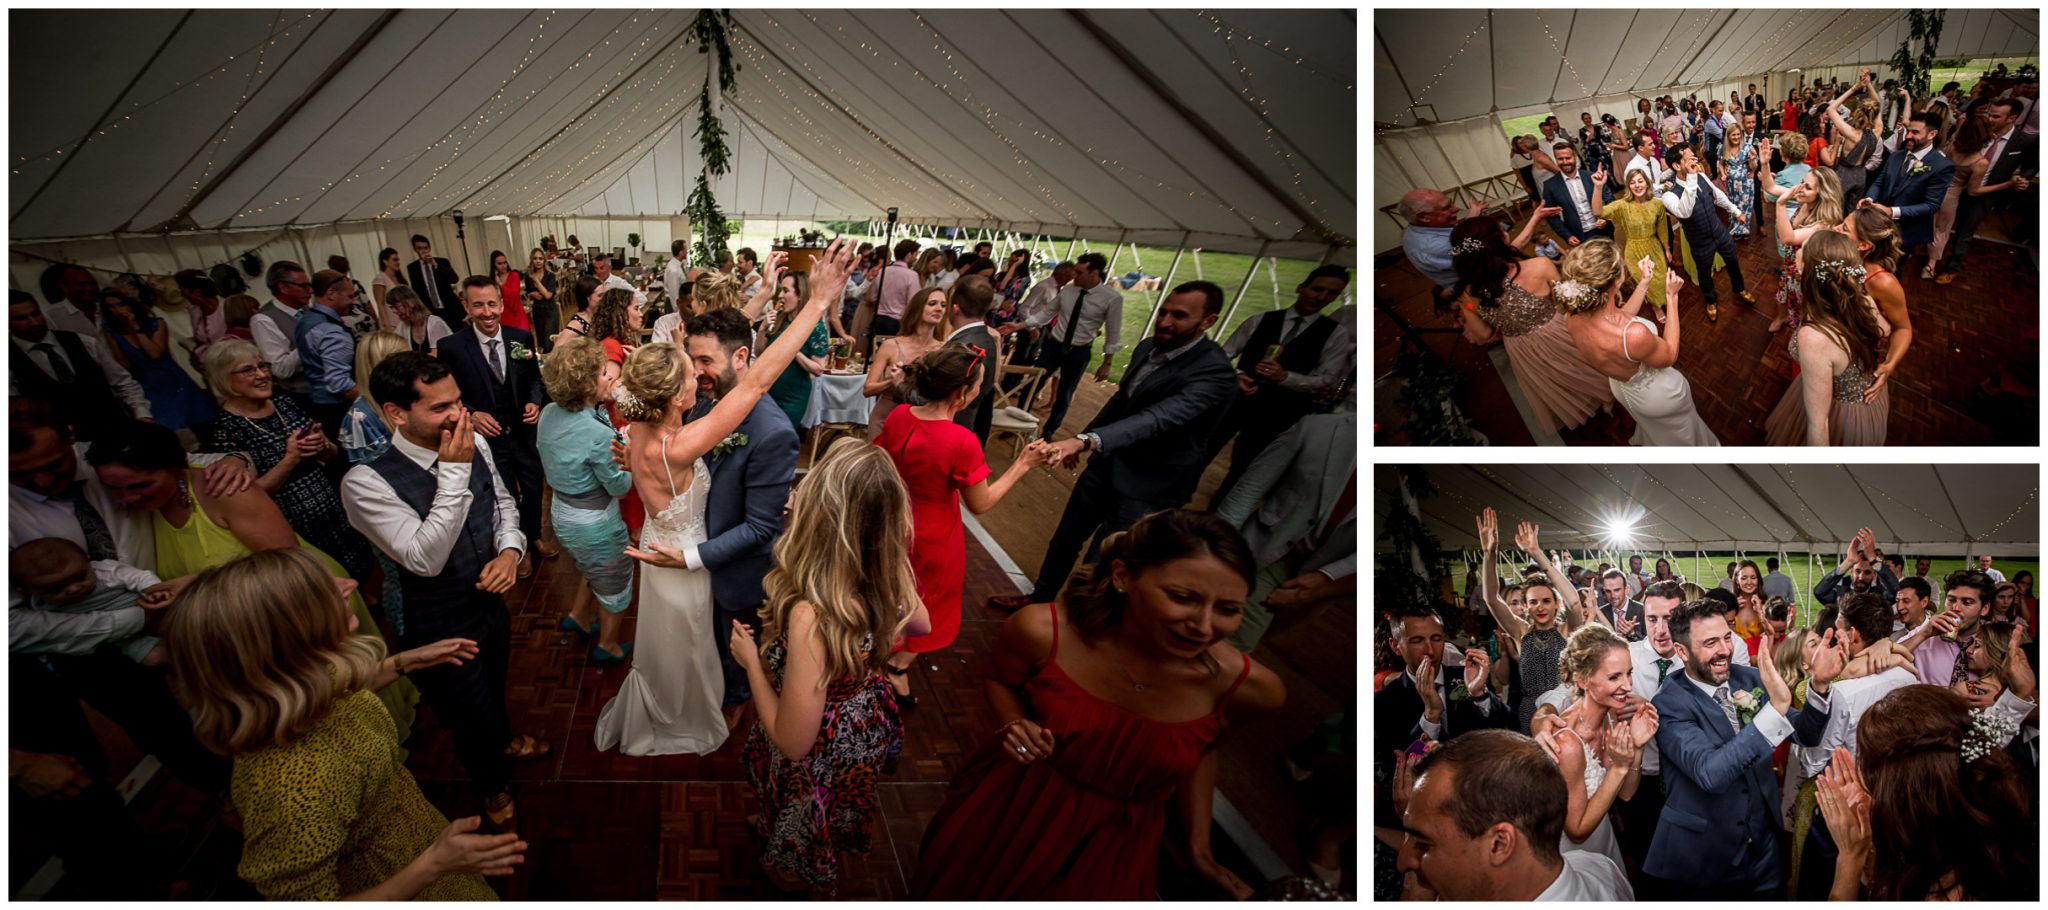 Dancefloor action at wedding reception